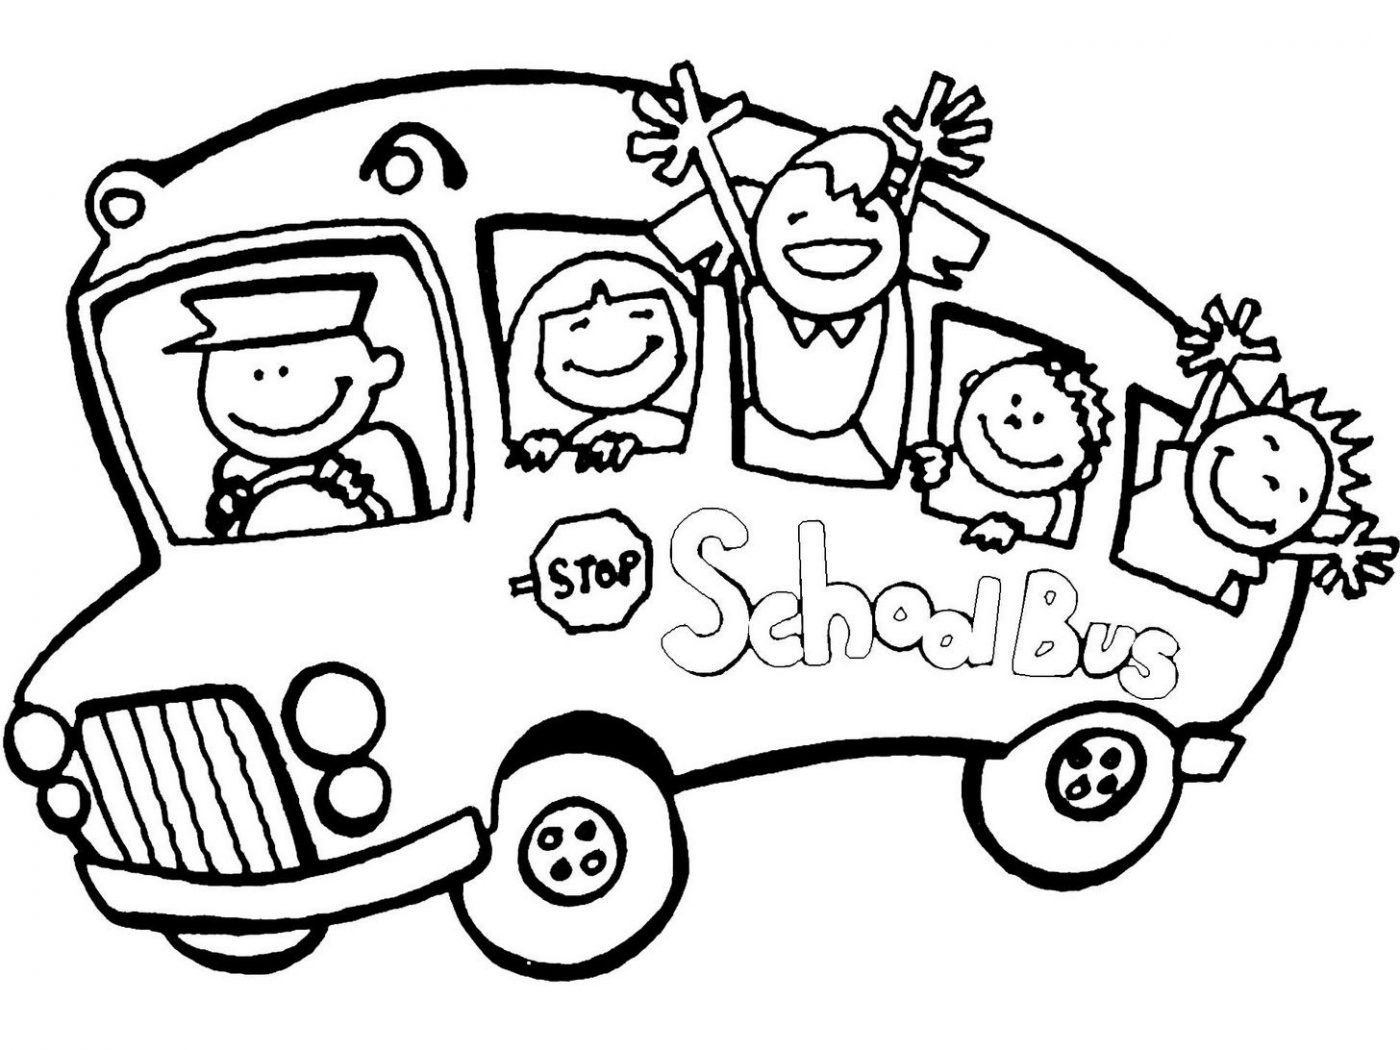 1400x1050 Free Printable School Bus Coloring Pages For Kids Safety Buses